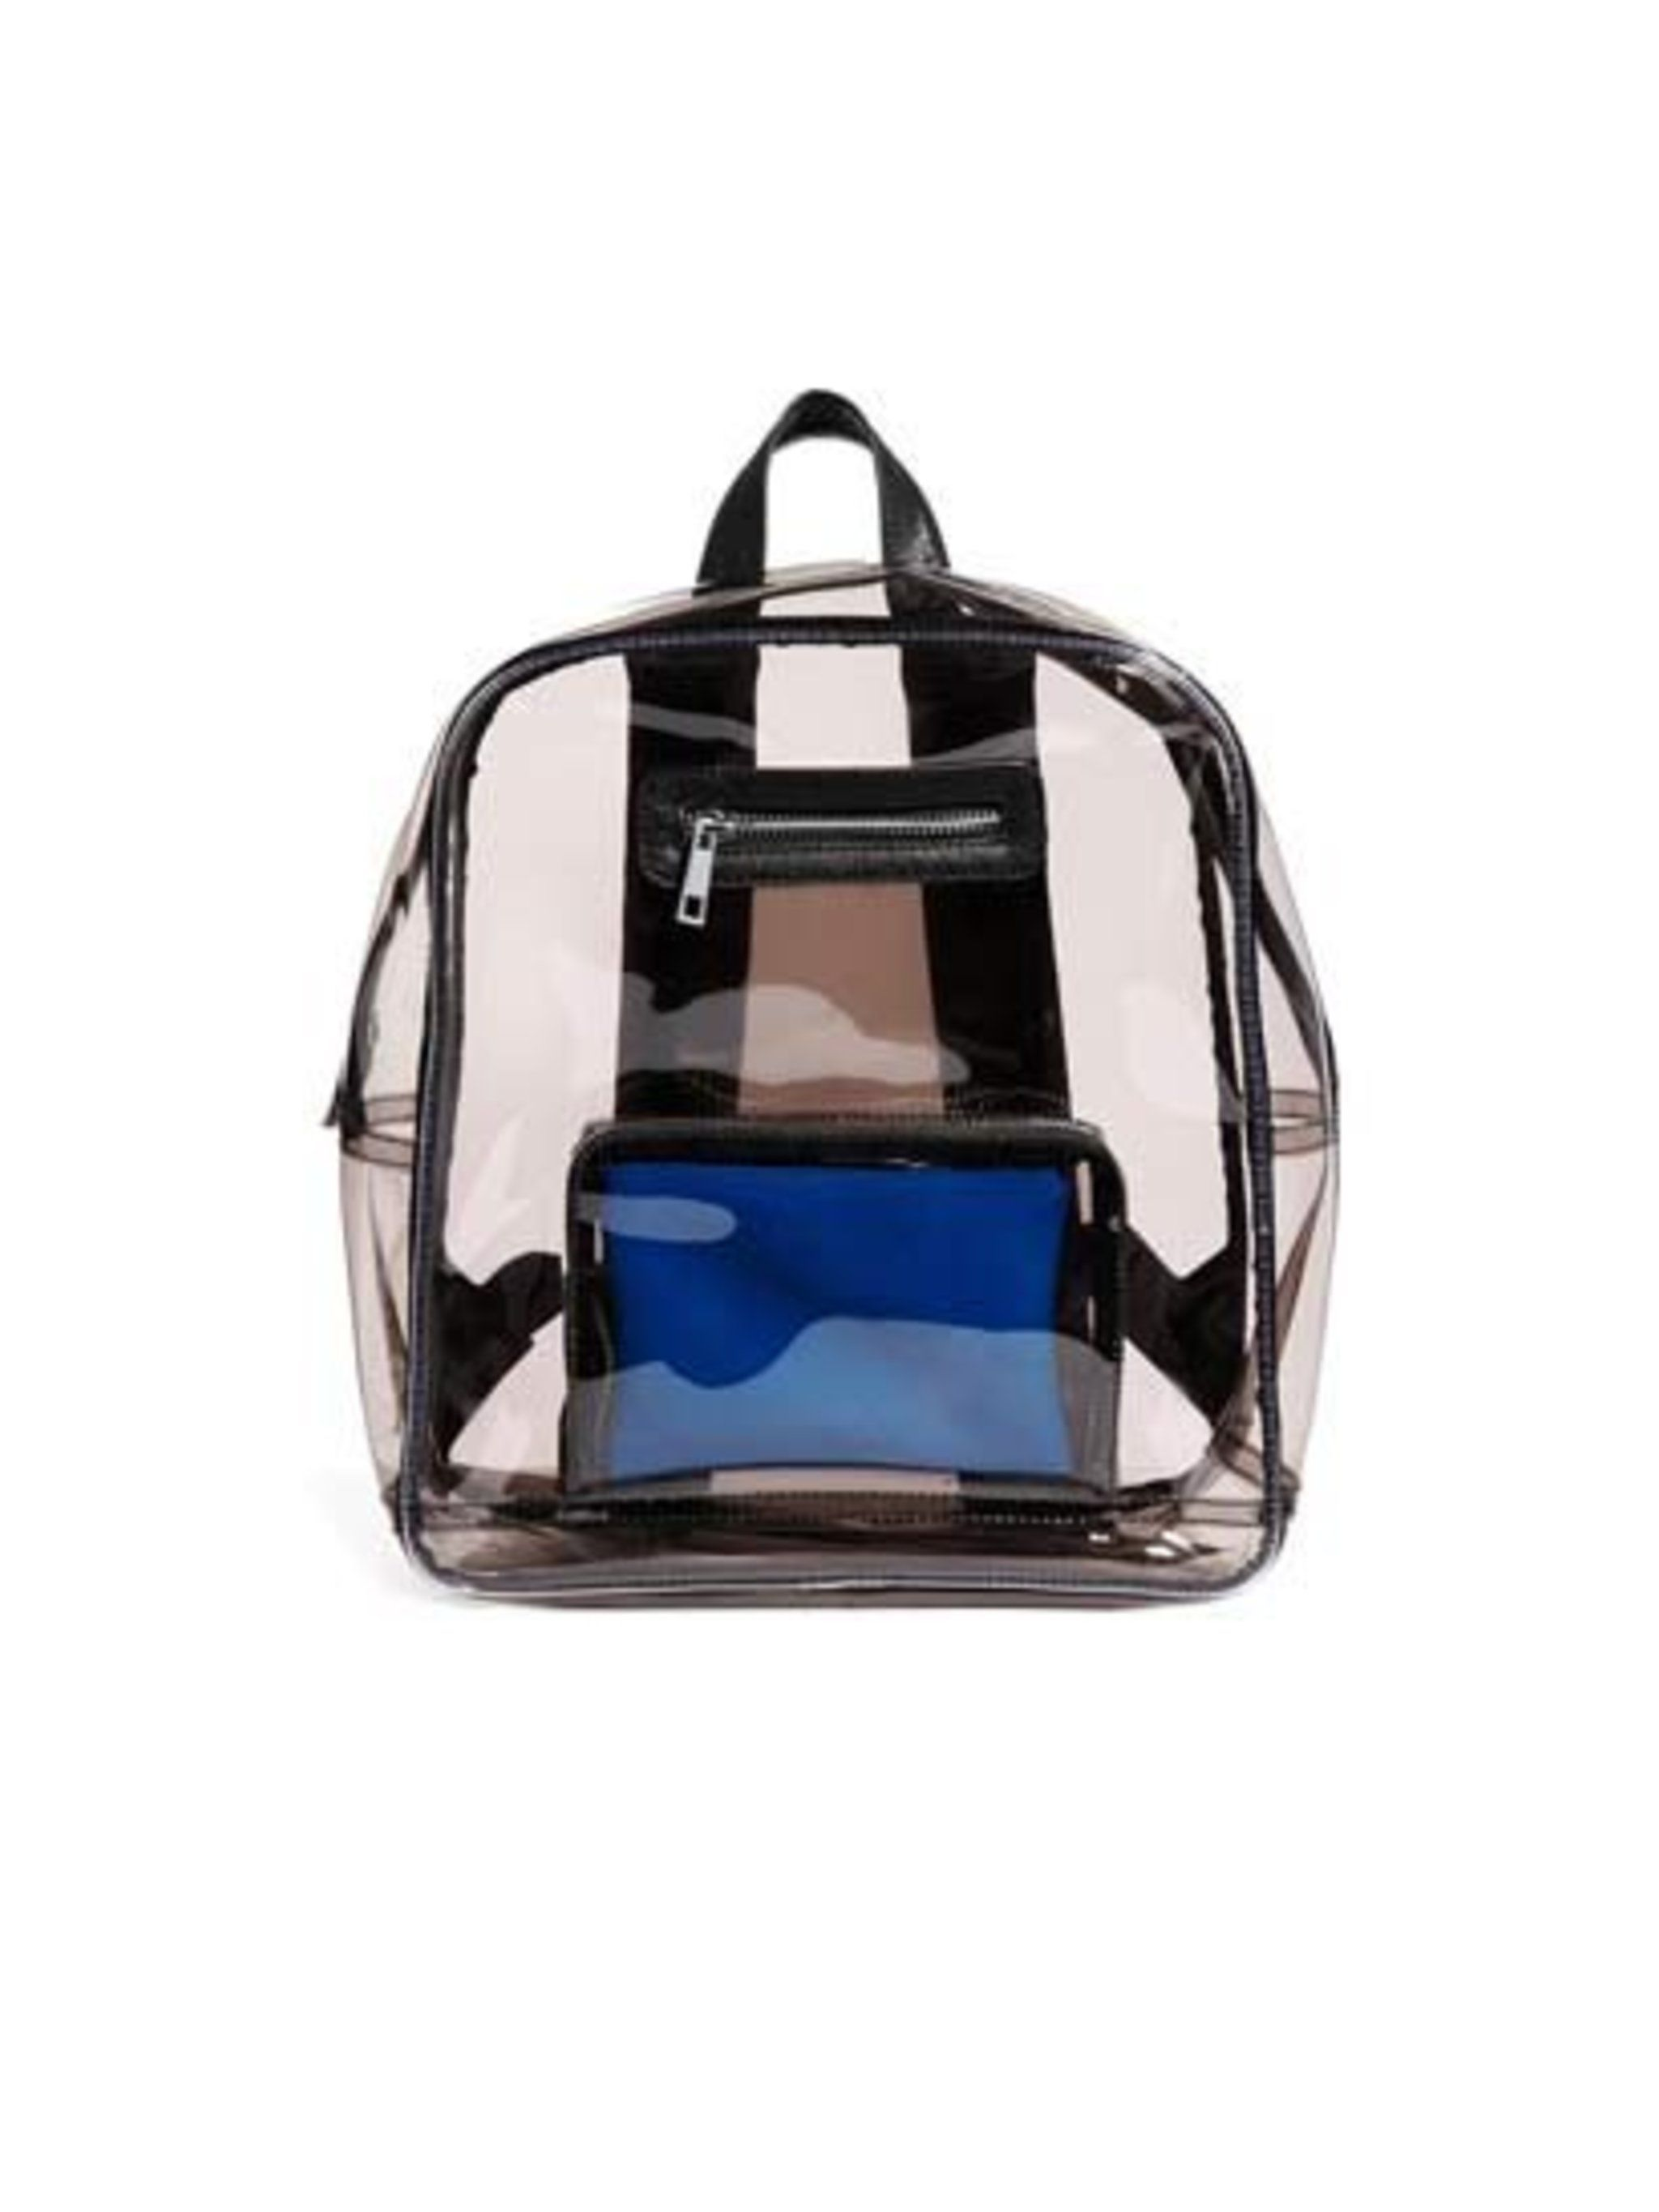 "<p><a href=""http://www.asos.com/ASOS/ASOS-Clear-Backpack-With-Internal-Coin-Purse/Prod/pgeproduct.aspx?iid=3701378&amp&#x3B;SearchQuery=clear%20plastic%20backpack&amp&#x3B;sh=0&amp&#x3B;pge=0&amp&#x3B;pgesize=36&amp&#x3B;sort=-1&amp&#x3B;clr=Black"">Asos</a> backpack, £38</p>"